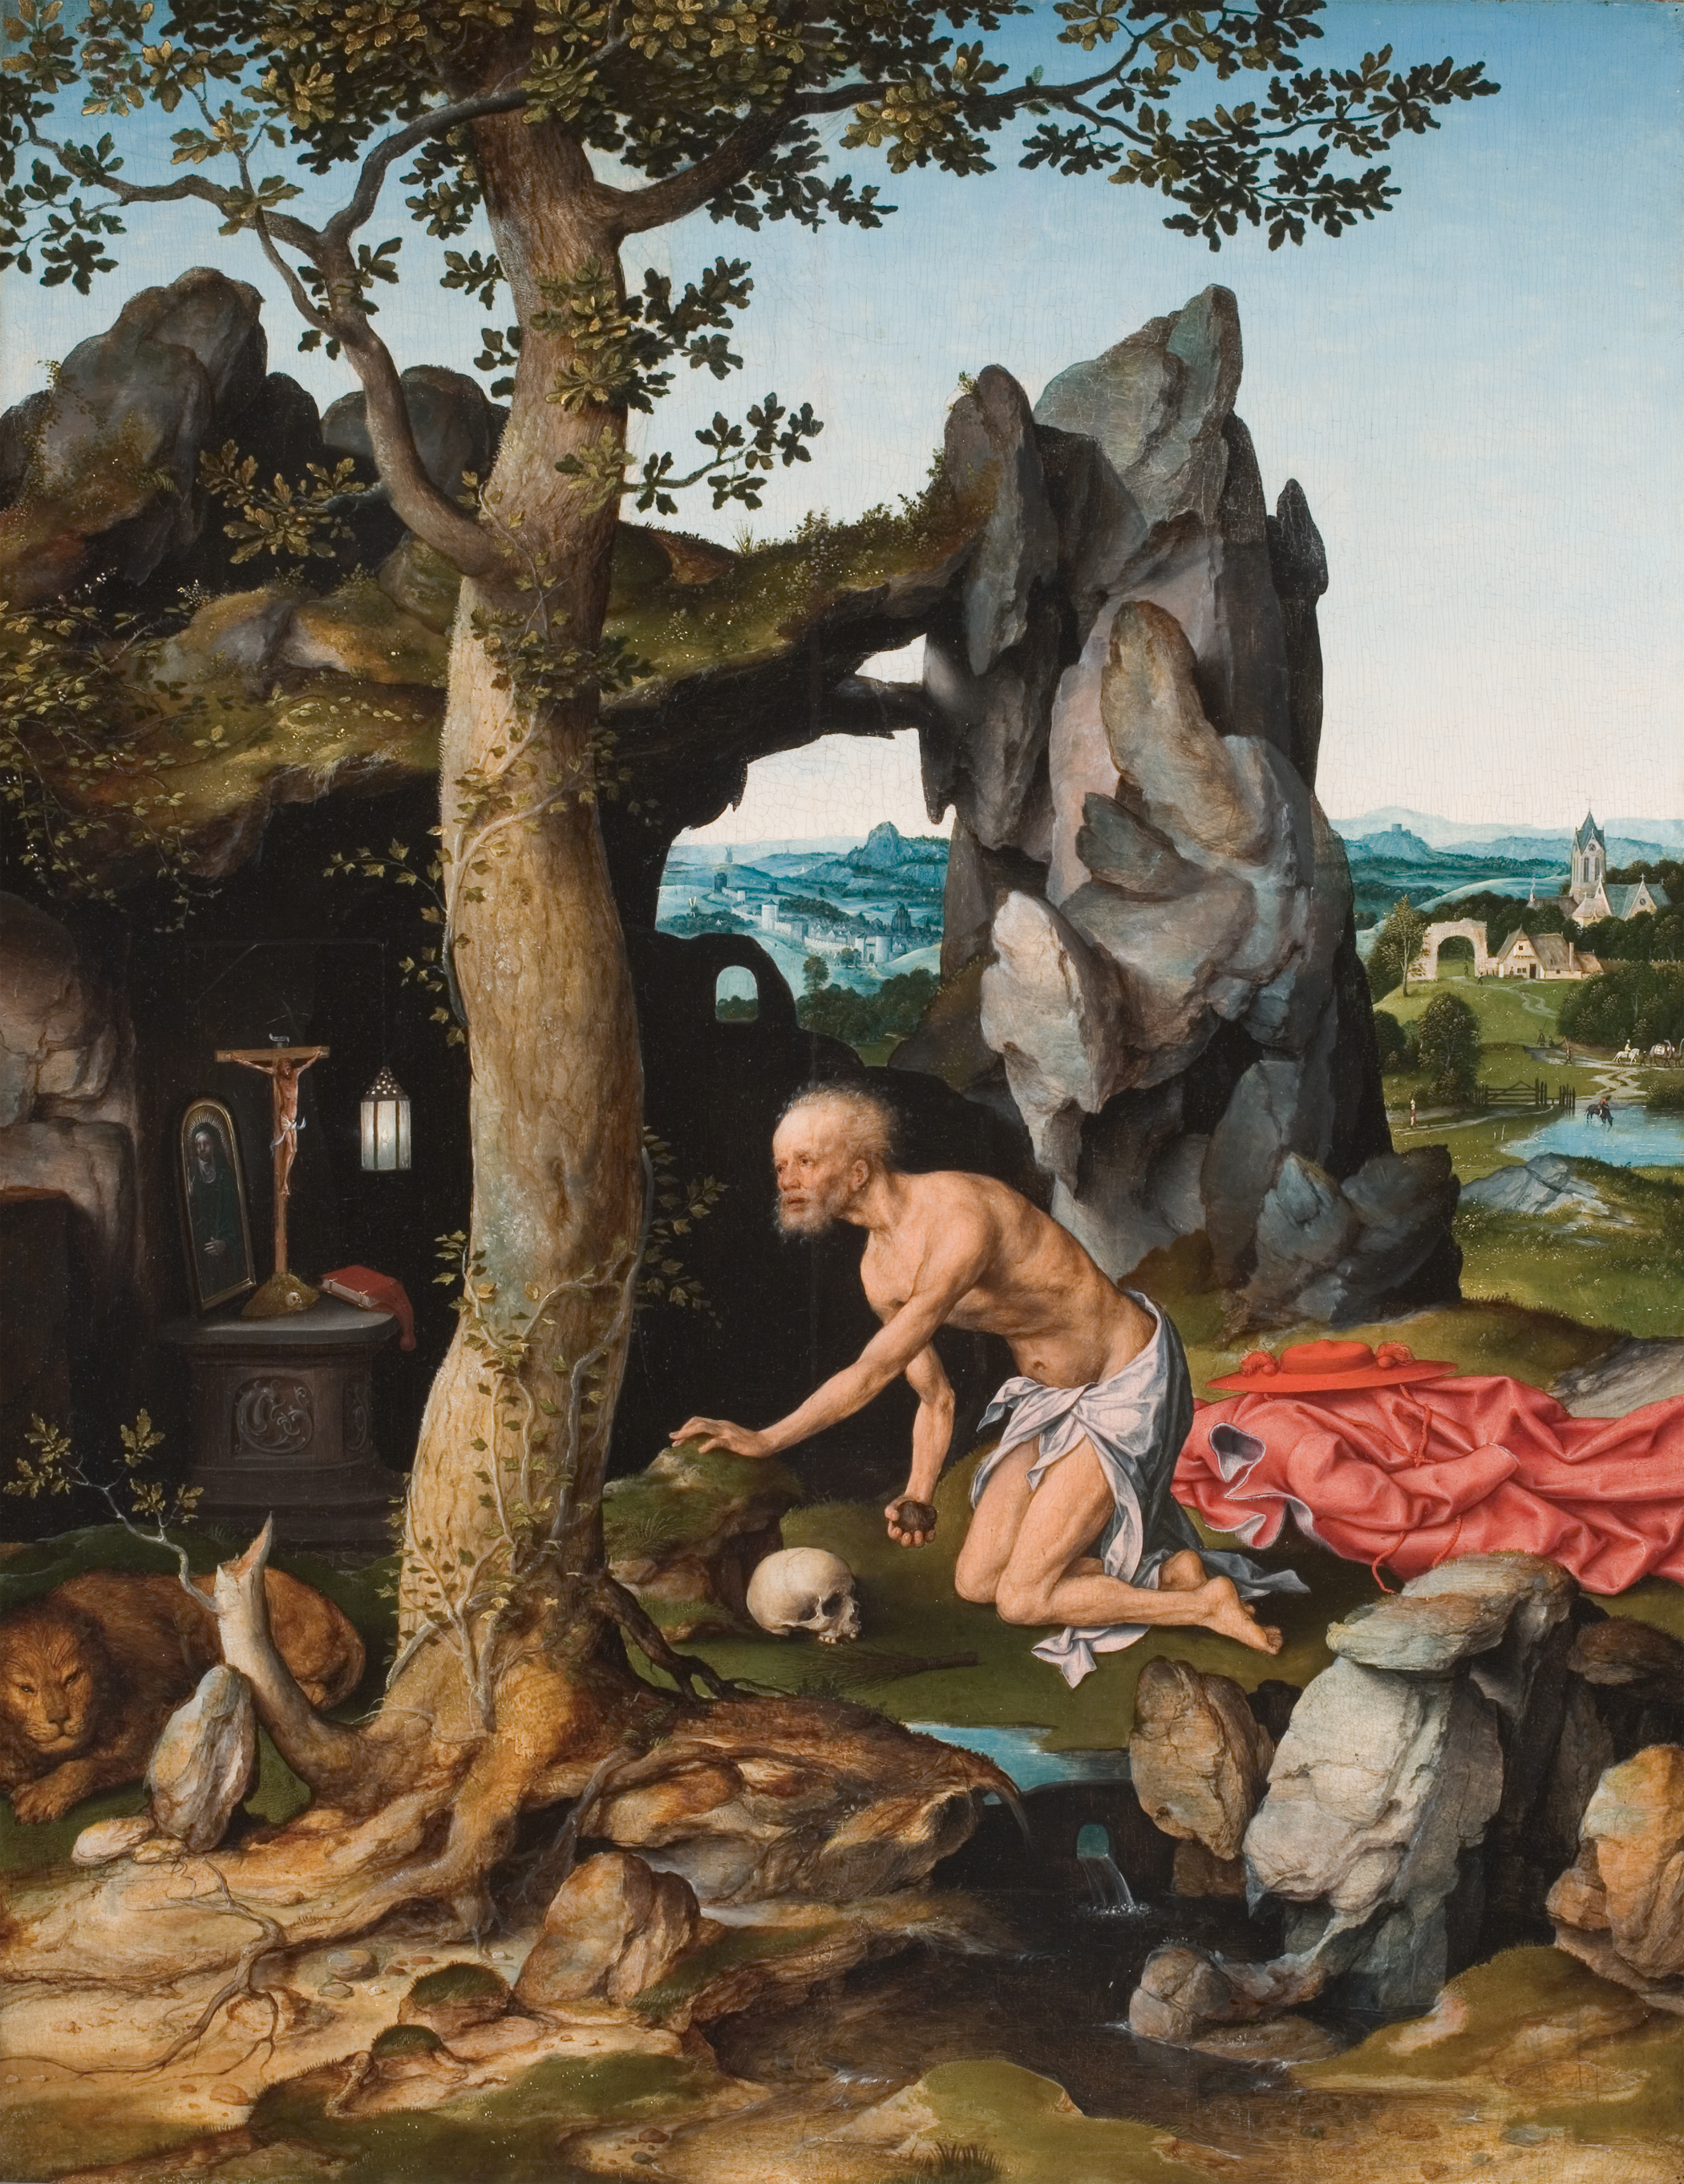 Joos van Cleve Flemish, ca. 1485-ca. 1540 St. Jerome in Penitence Oil on wood panel, circa 1516-18 Hackley Picture Fund Purchase 1940.47